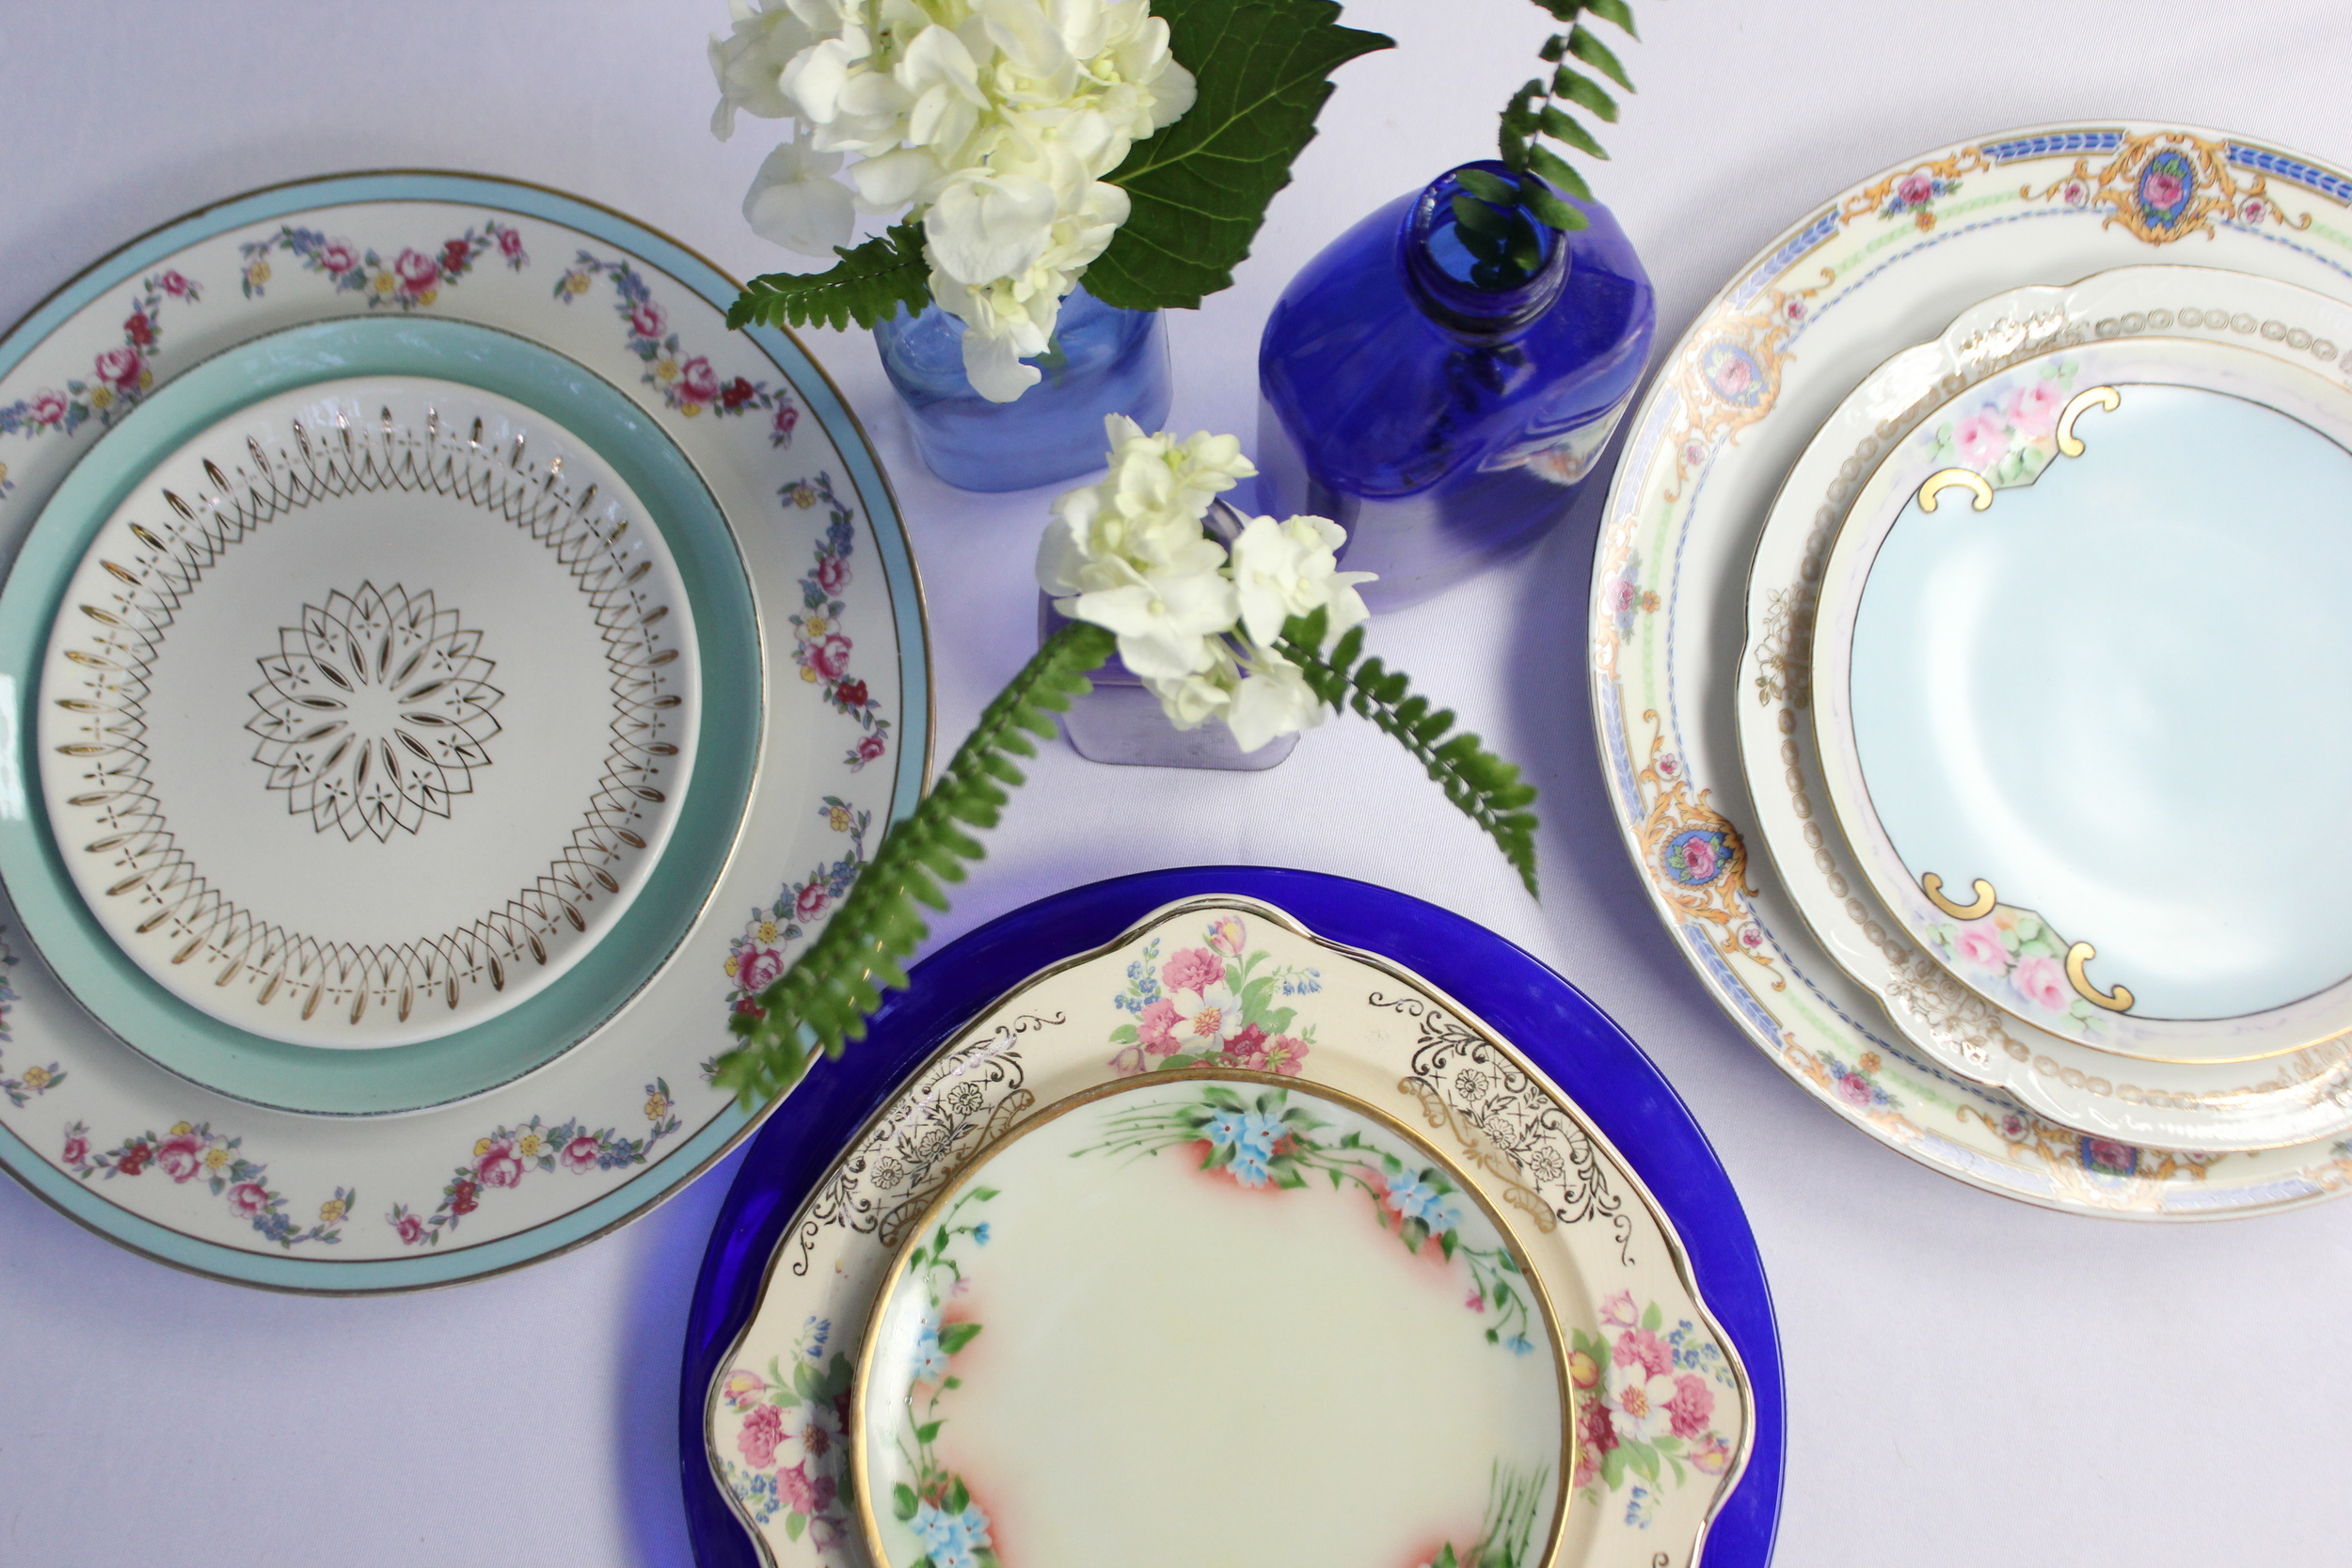 Vintage blue china and Depression glass plates